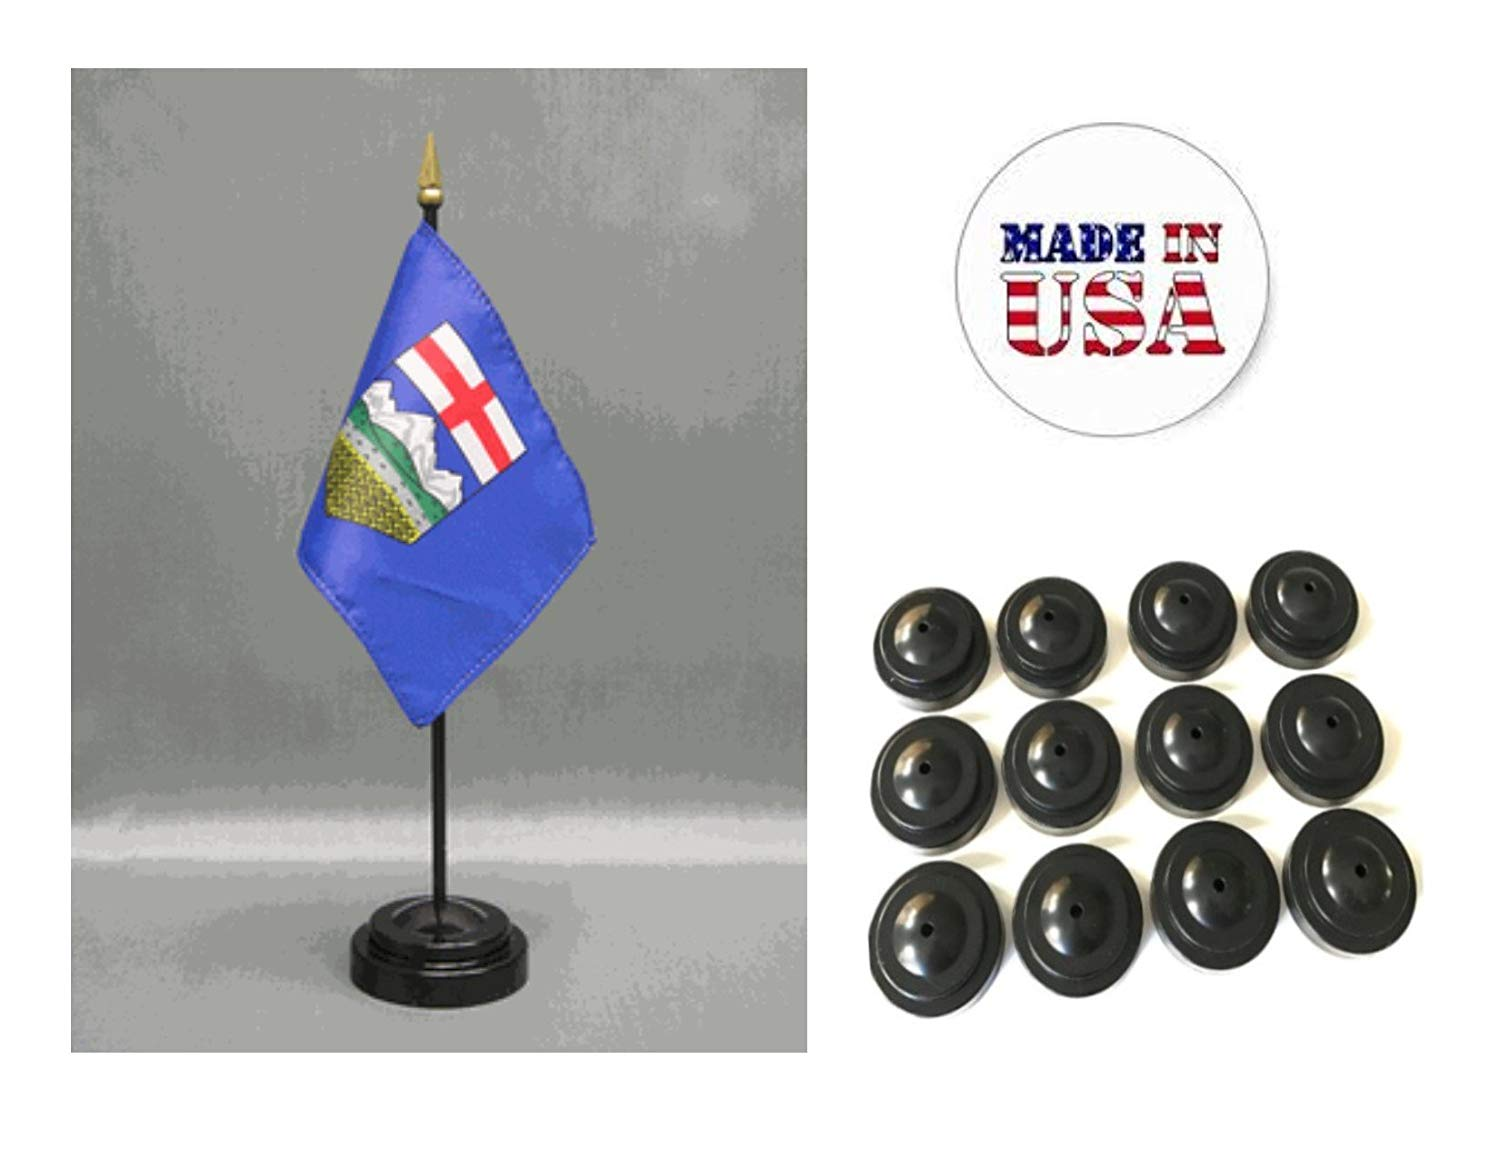 """Made in the USA!! Box of 12 Alberta 4""""x6"""" Miniature Desk & Table Flags Includes 12 Flag Stands & 12 Canada Albertan Small Mini Stick Flags"""